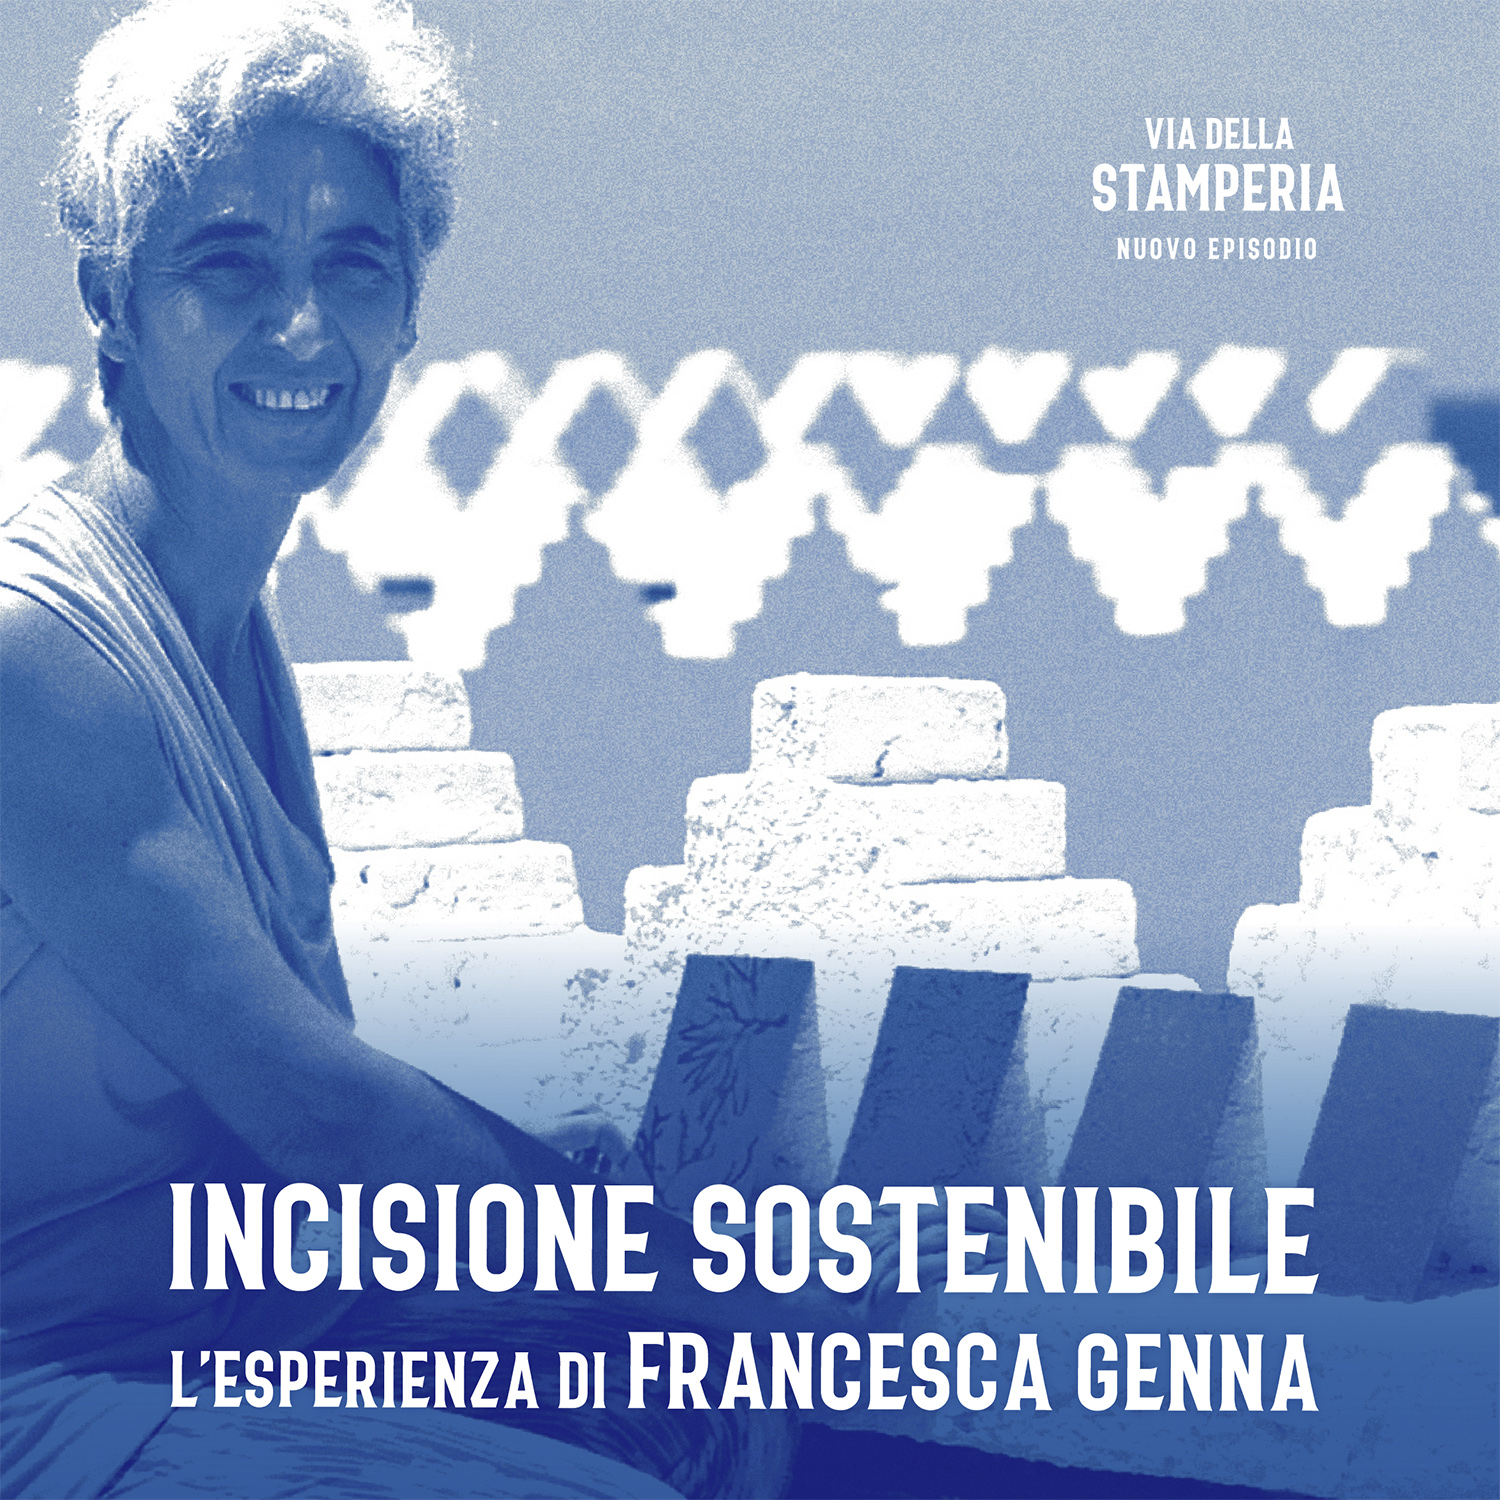 Incisione sostenibile FRANCESCA GENNA